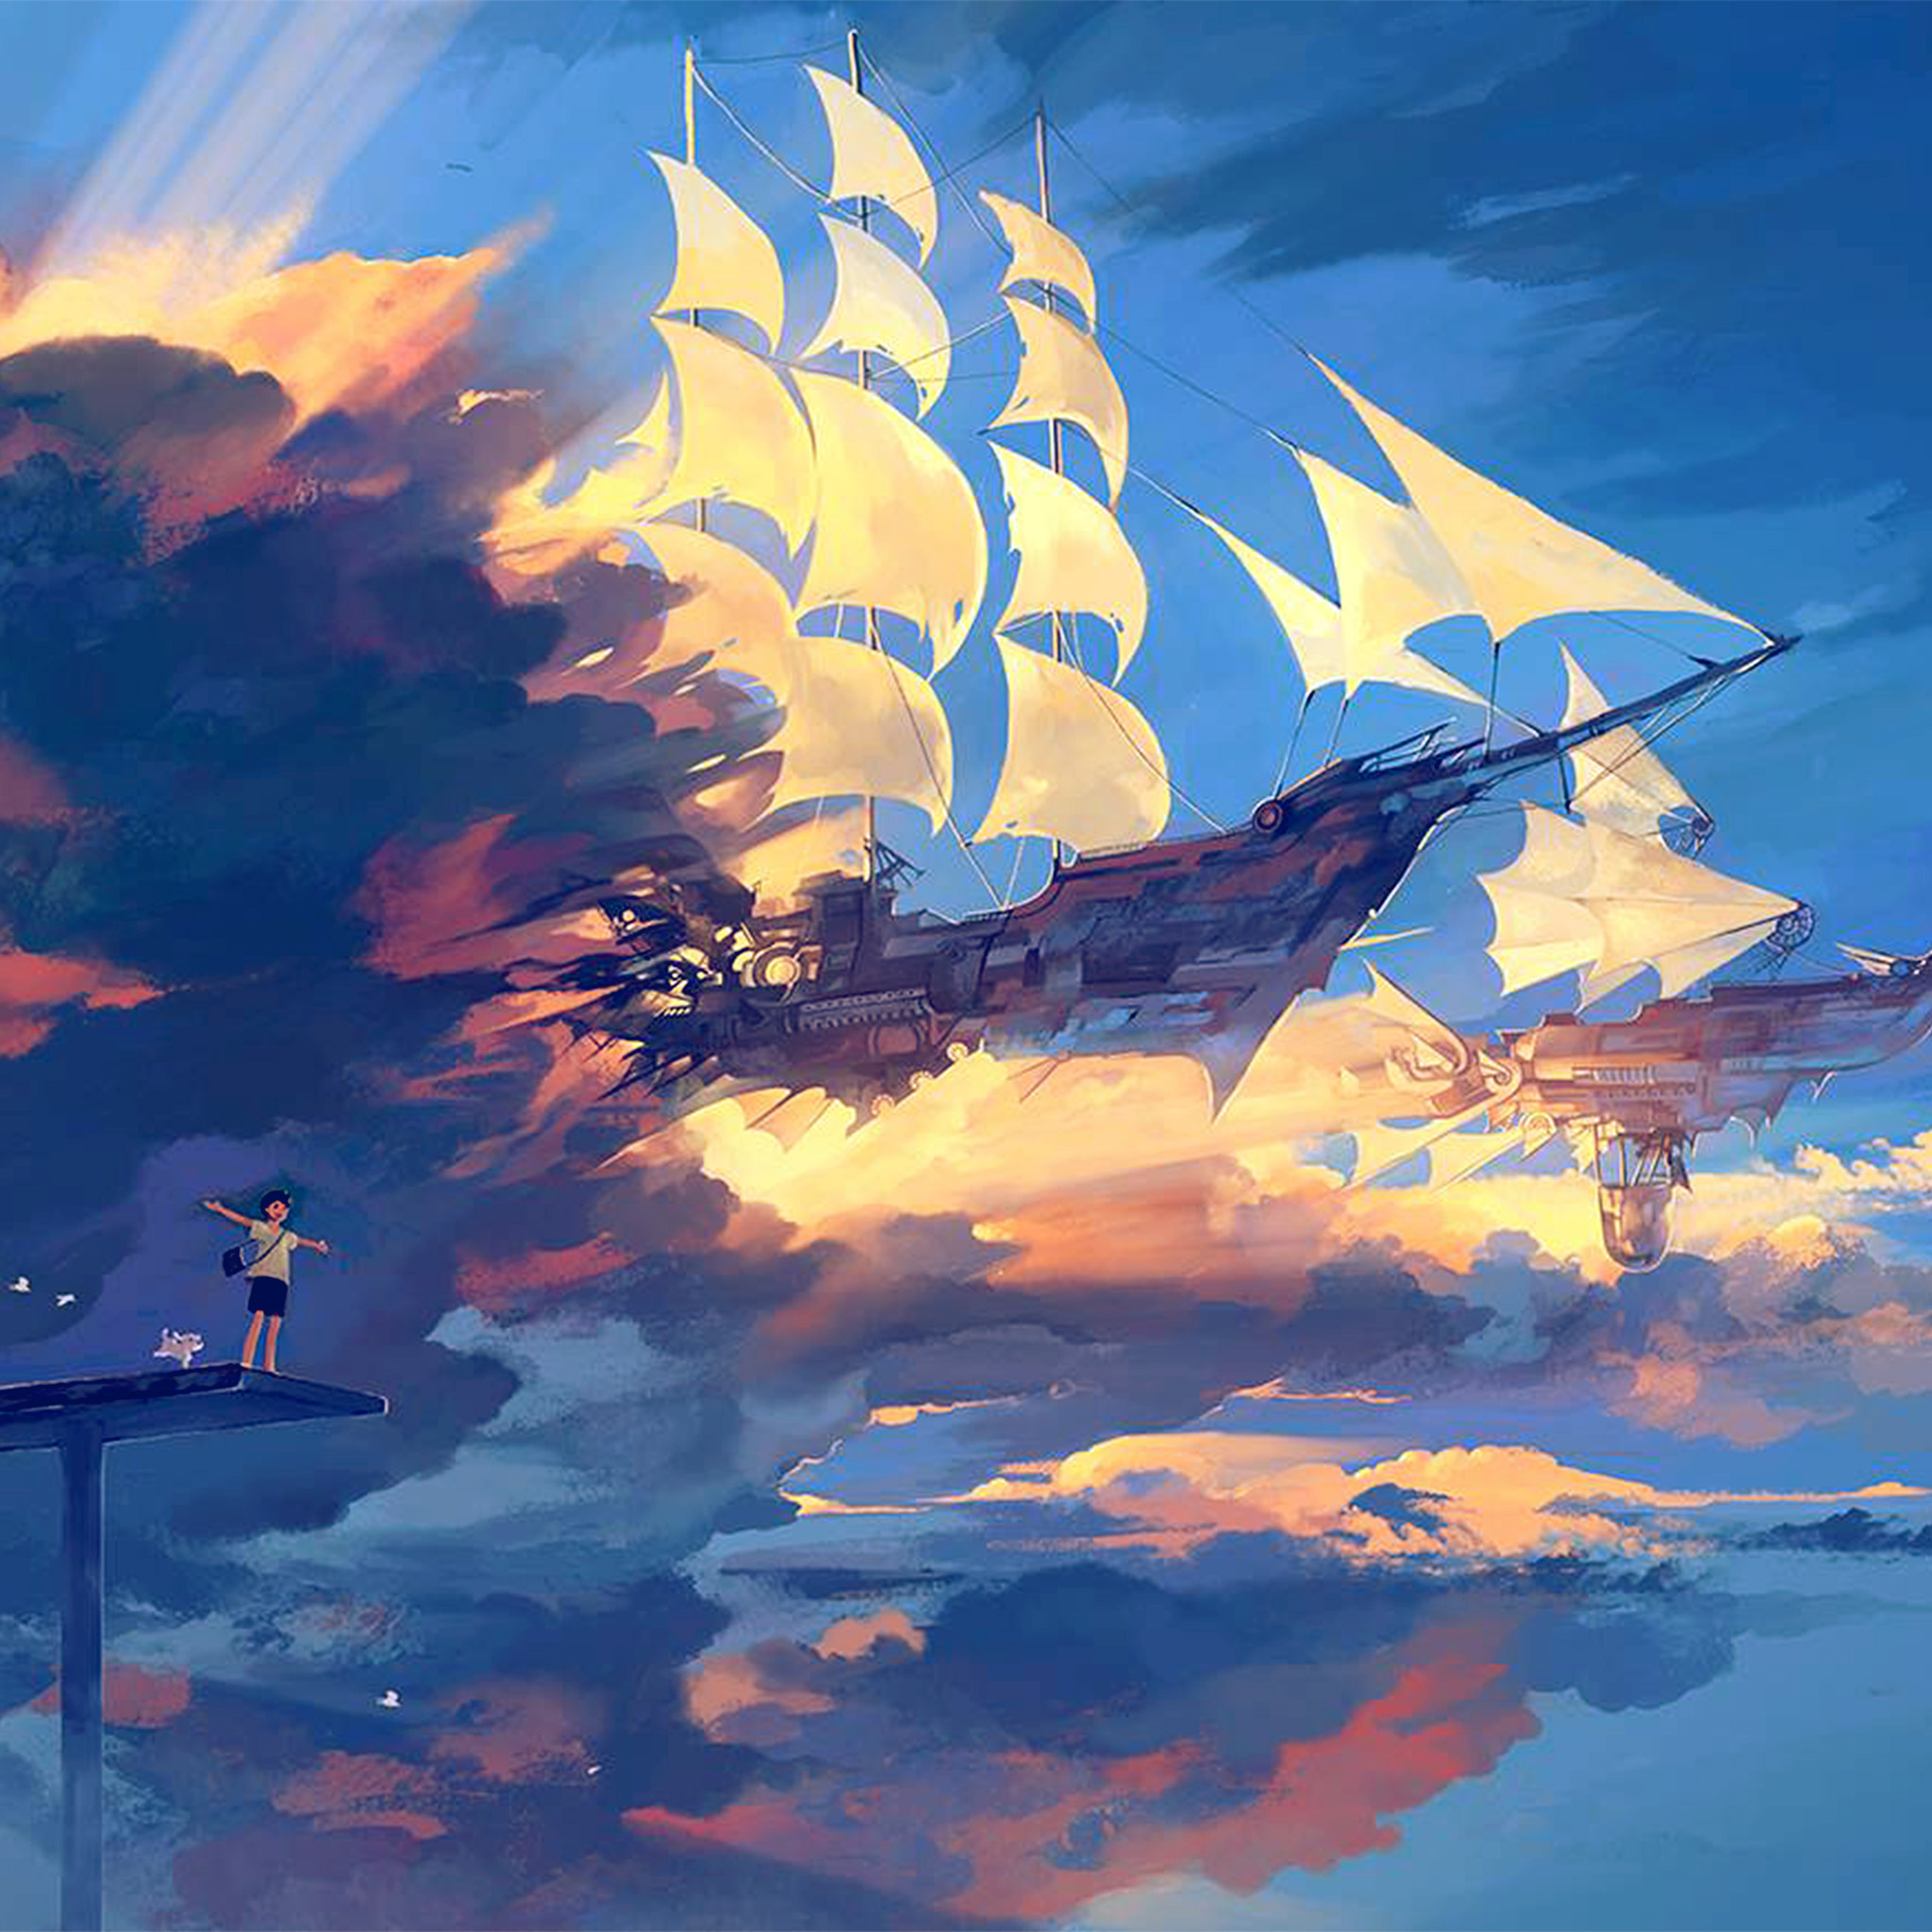 Hd 1600x900 Wallpaper: Az68-fly-ship-anime-illustration-art-blue-wallpaper